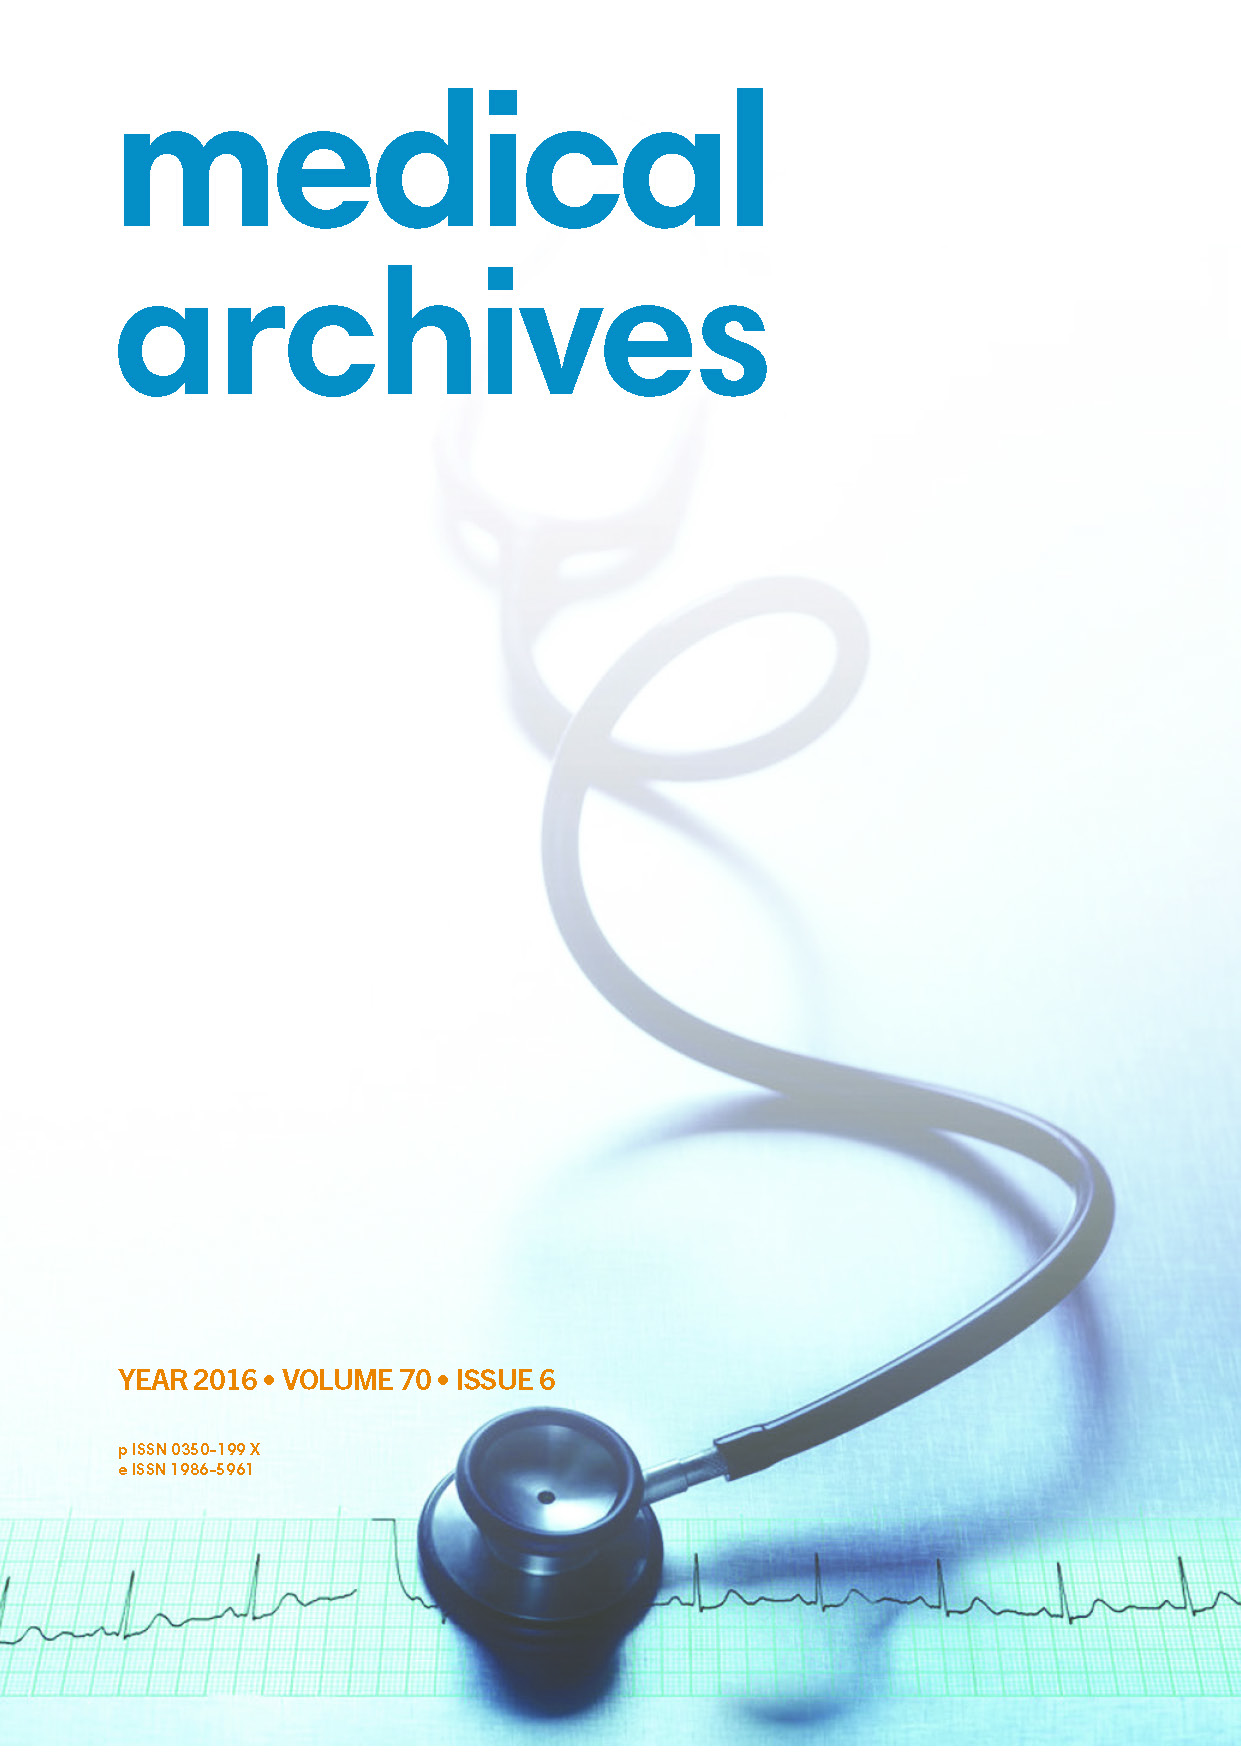 Medical Archives - Journal of the Academy of Medical